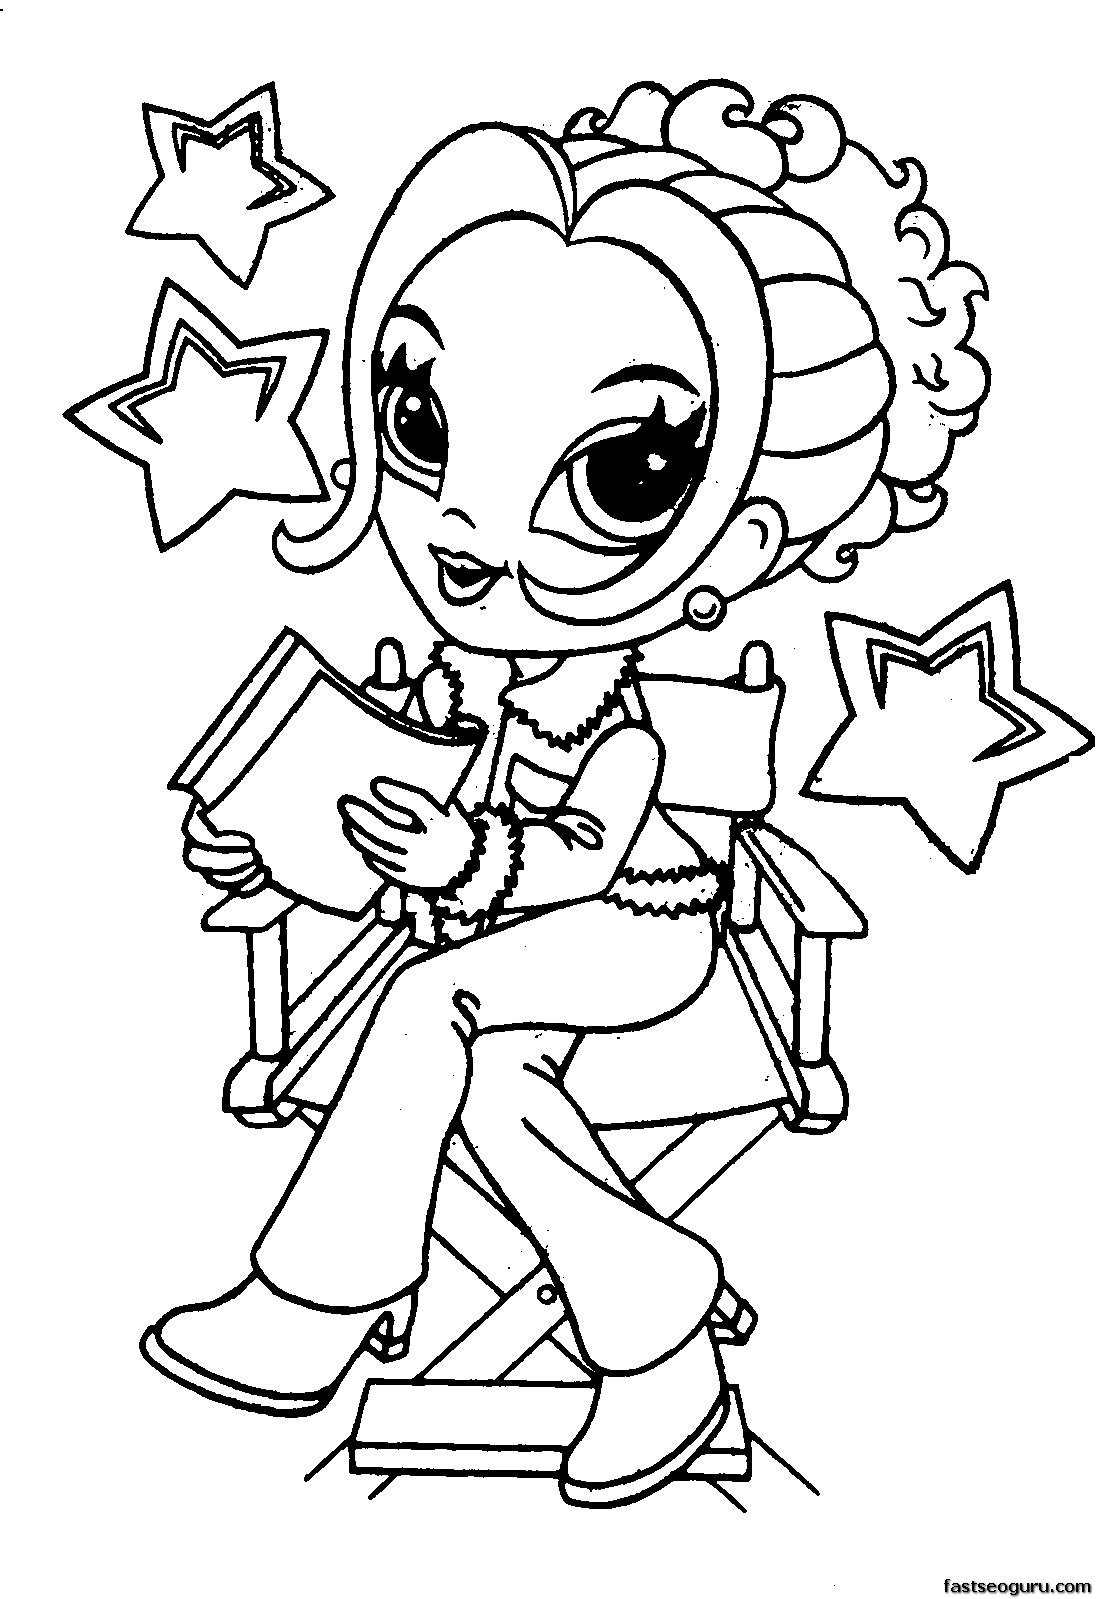 lisa frank coloring pages to print of girls - Coloring Books For Girls